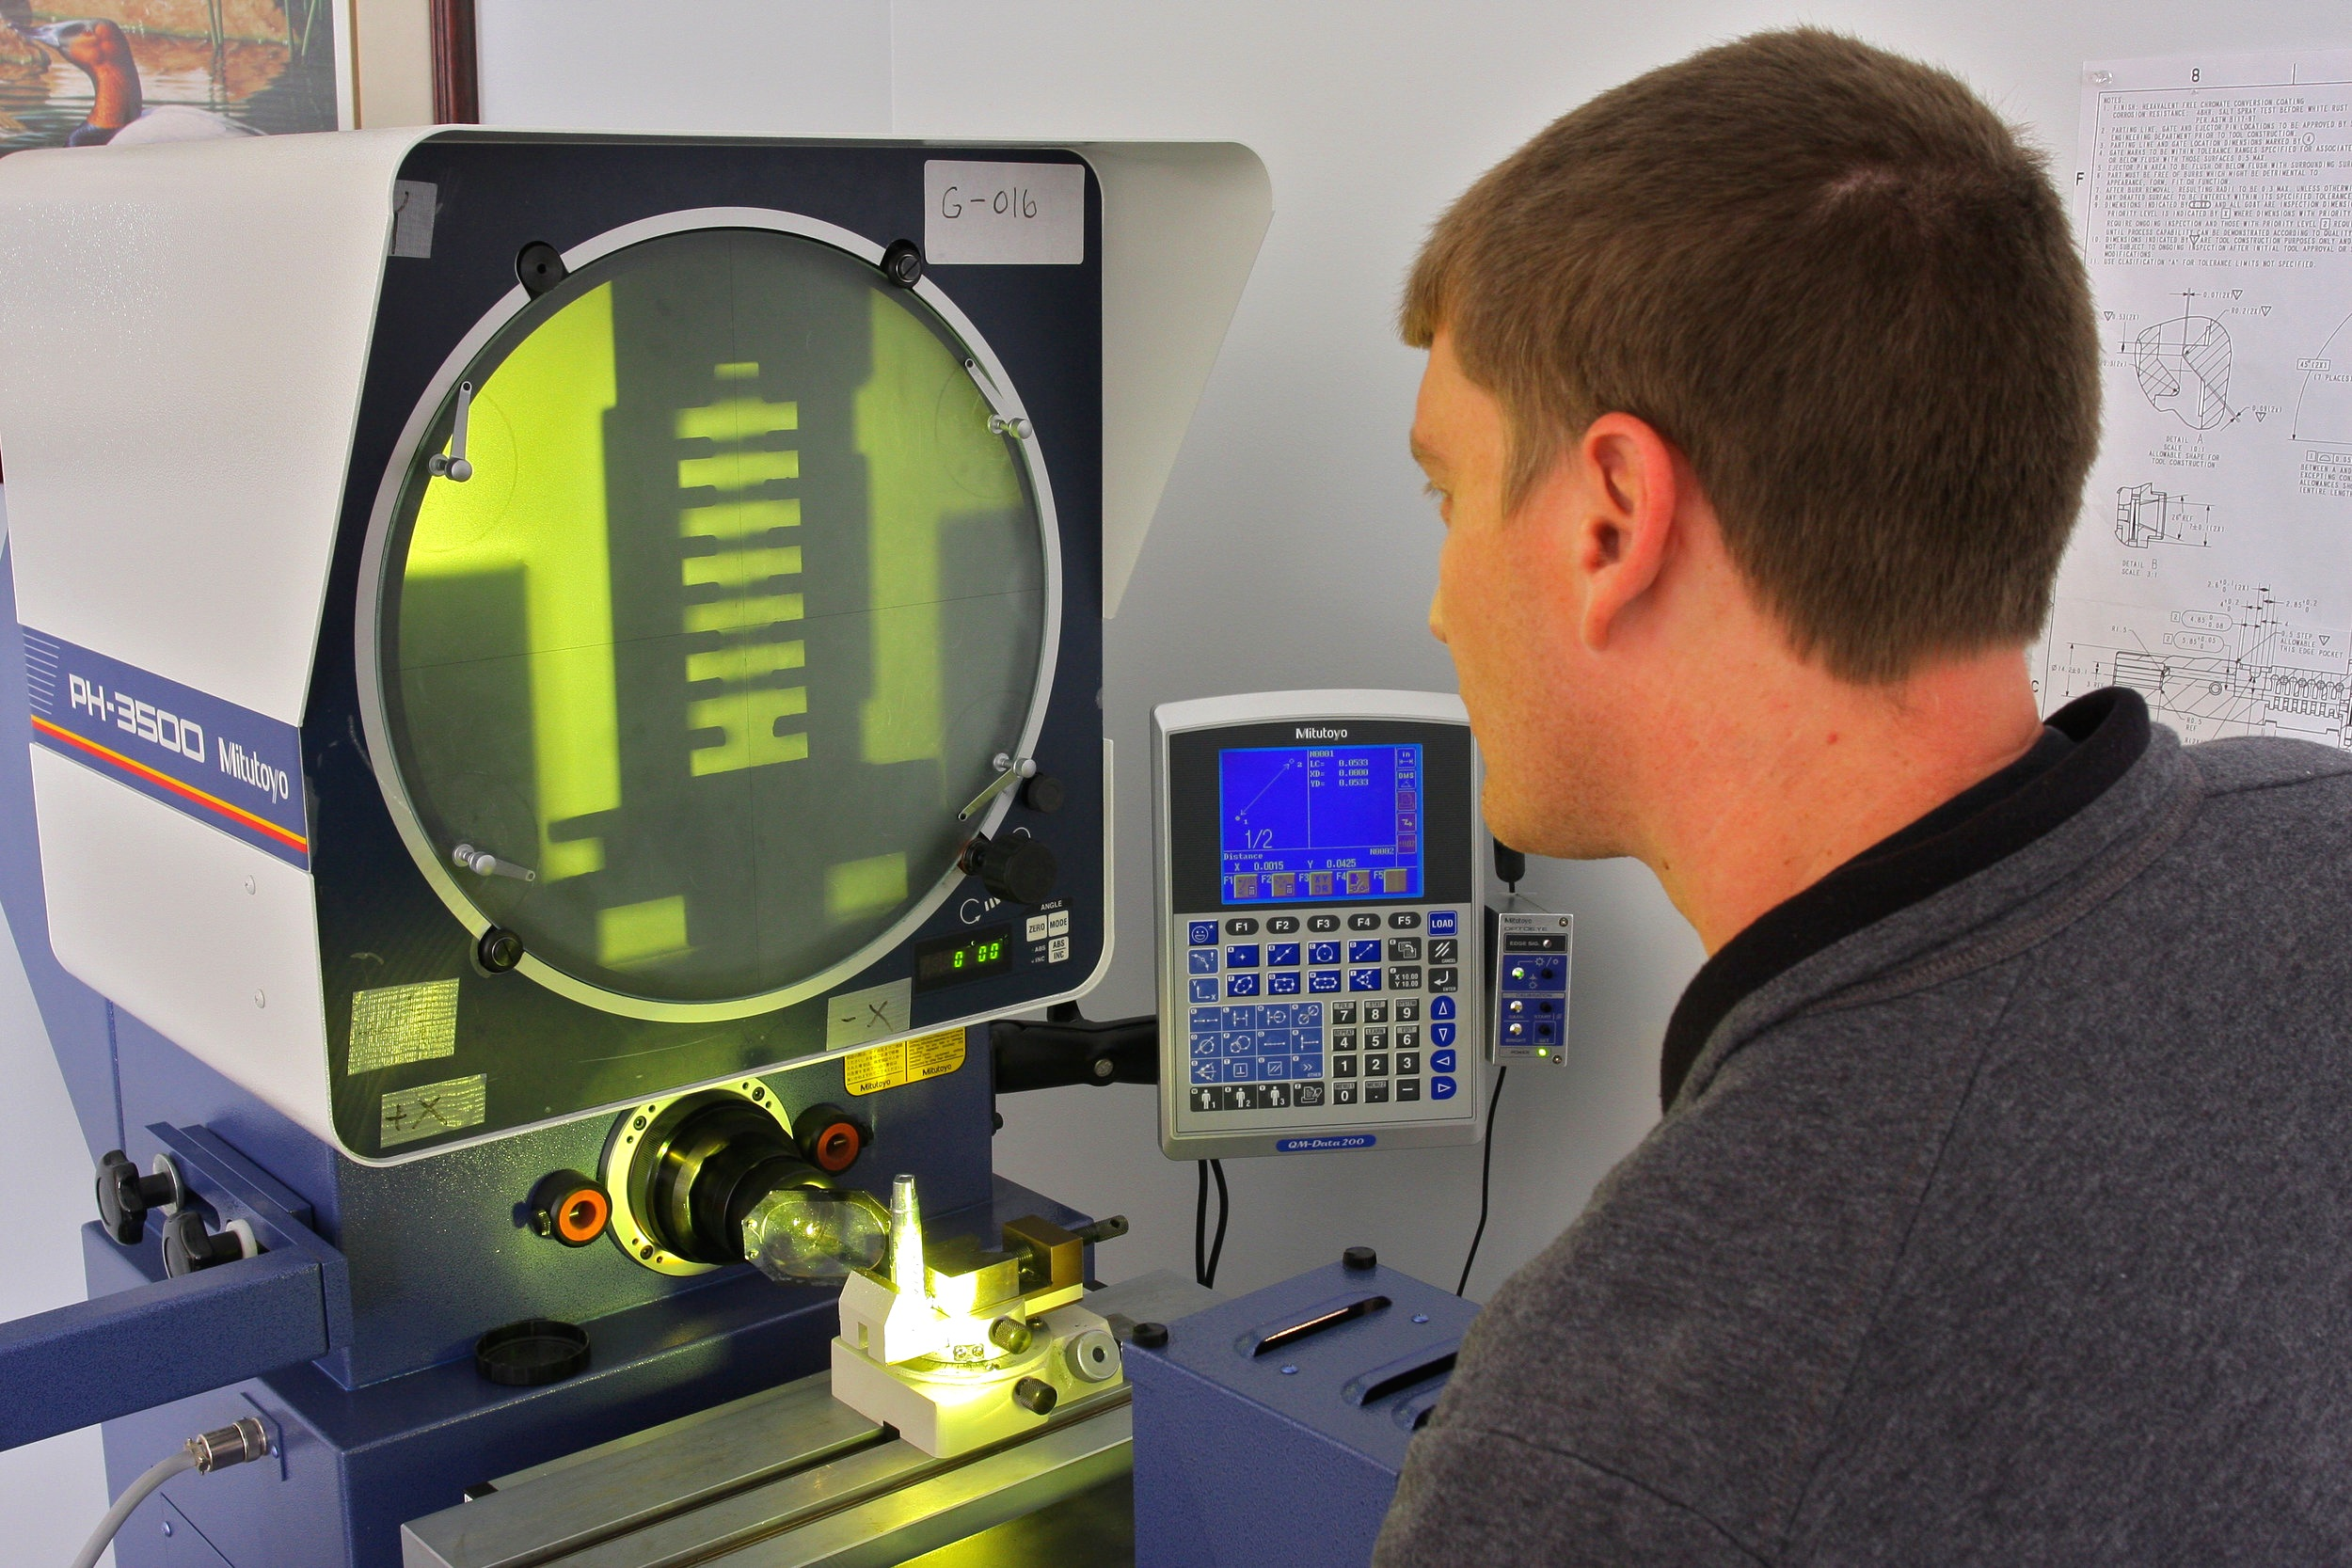 Our Mitutoyo PH-3500 Optical Comparator with attached 2D Data processor allows us to perform quick and accurate optical checks for features such as thread pitch.